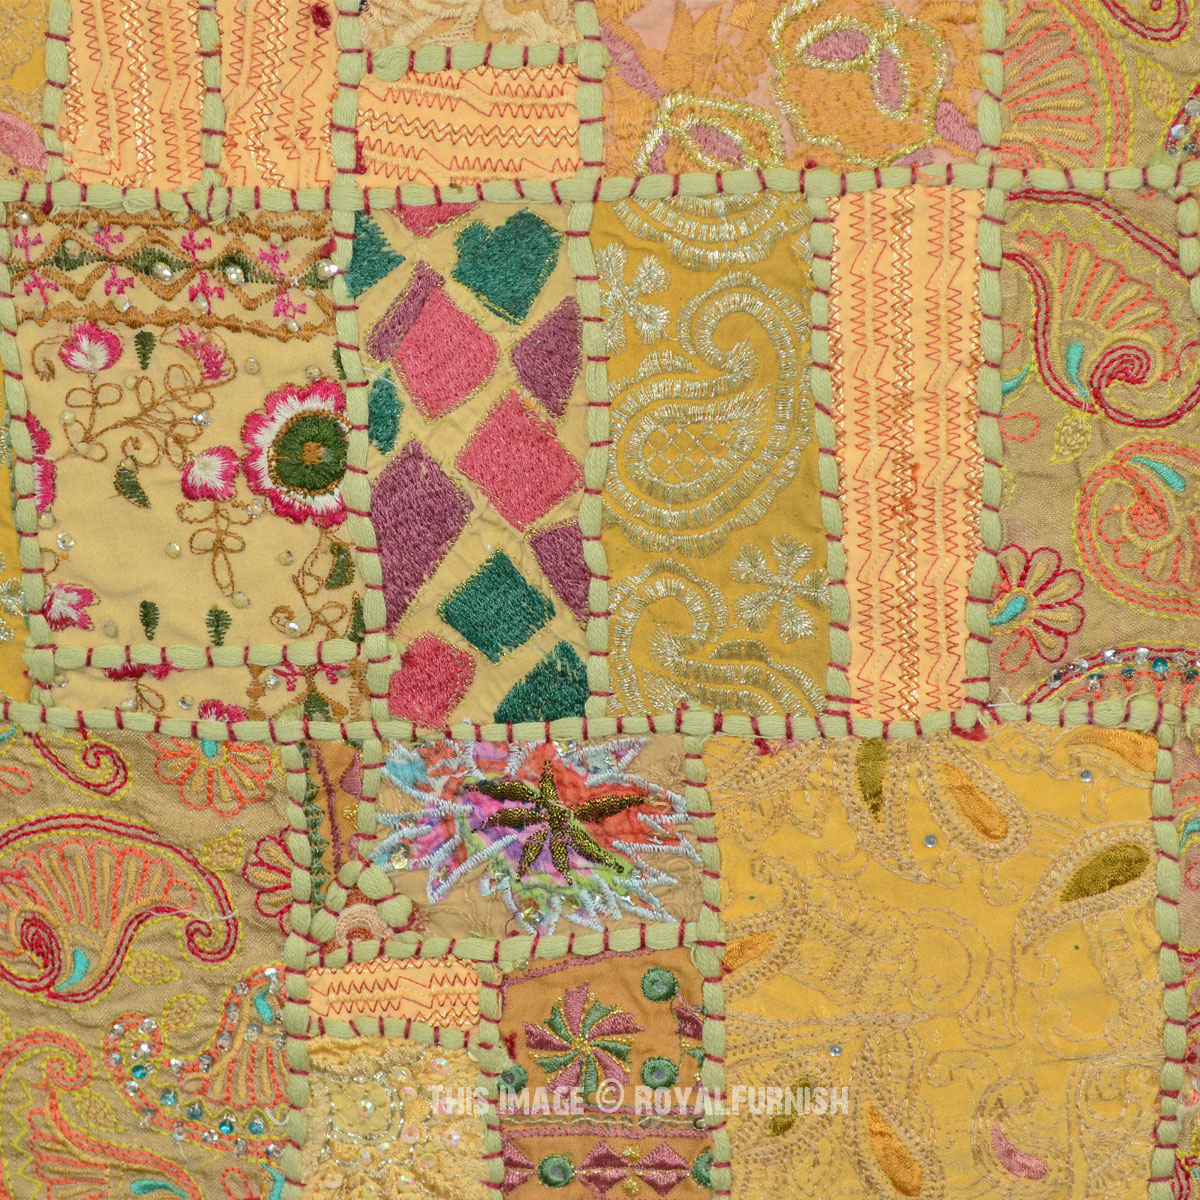 Green Vintage Fabric Patchwork And Embroidered India Wall